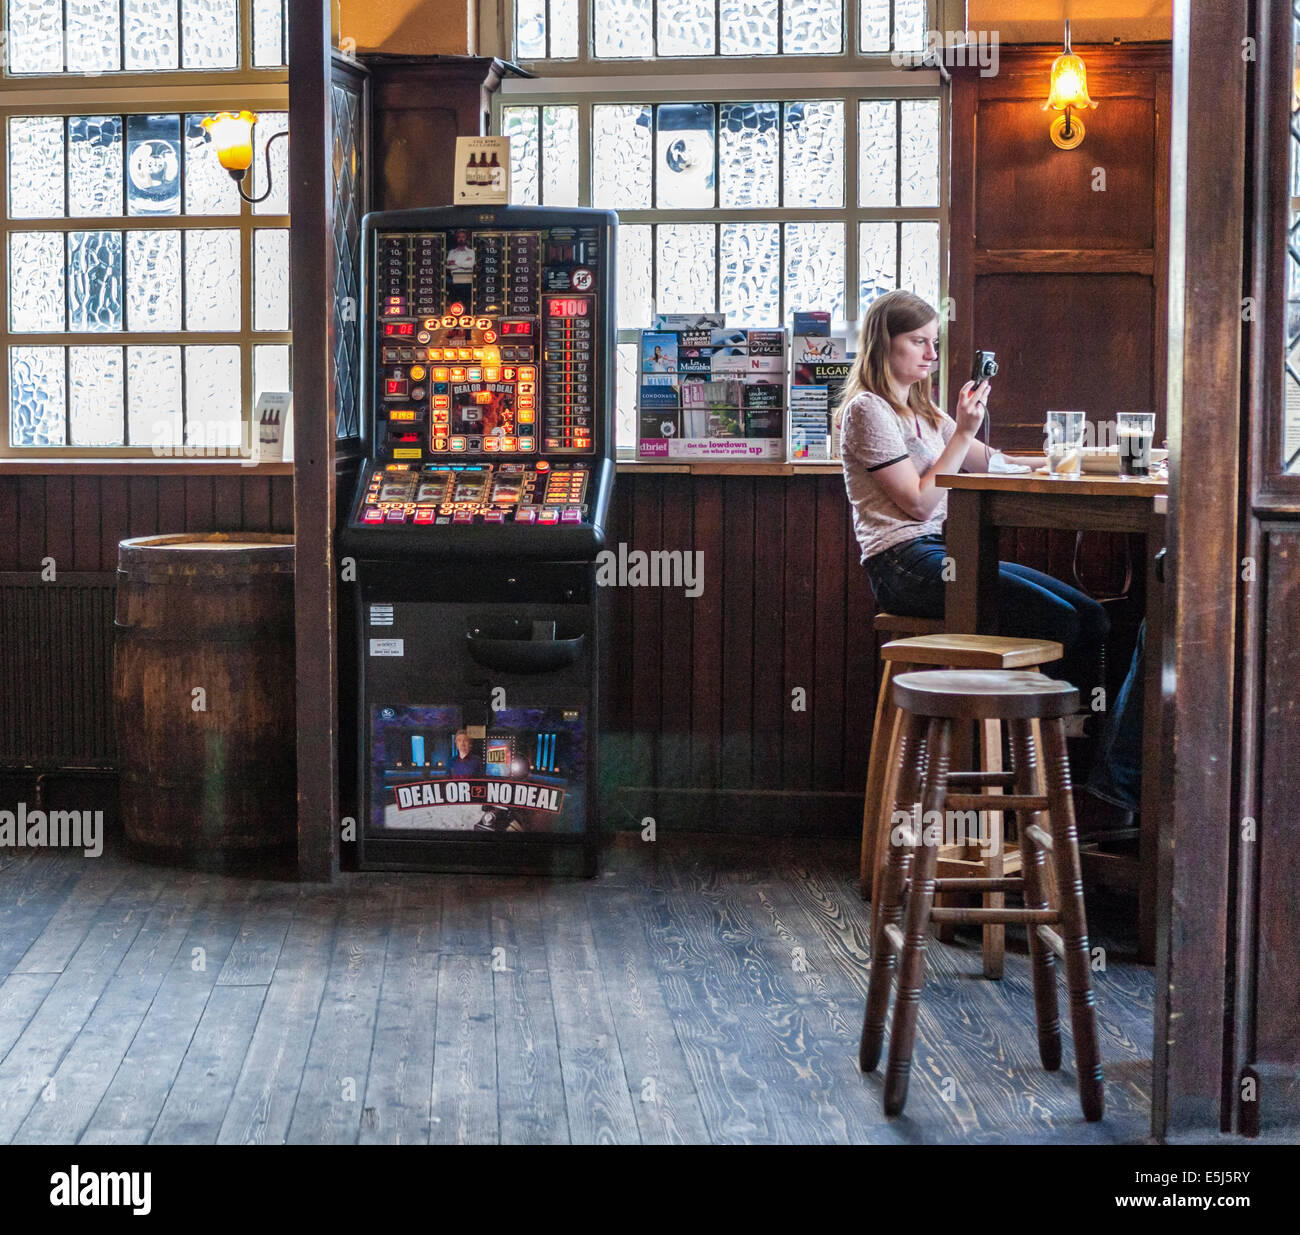 'The Market Porter' interior - inside a traditional London pub with gaming machine and woman sitting on - Stock Image